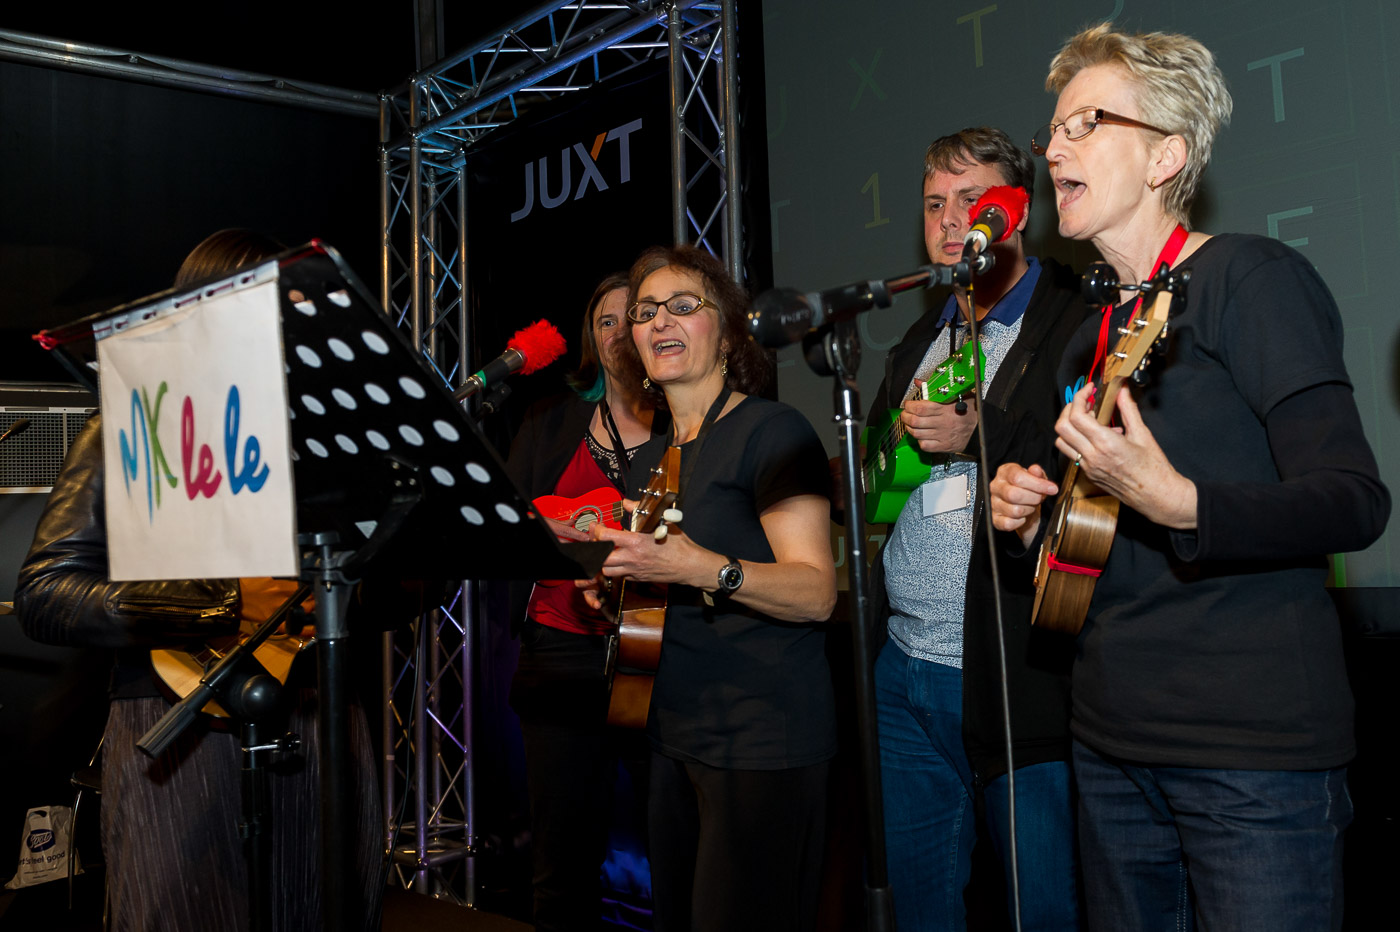 Some music to liven up our XT16 conference